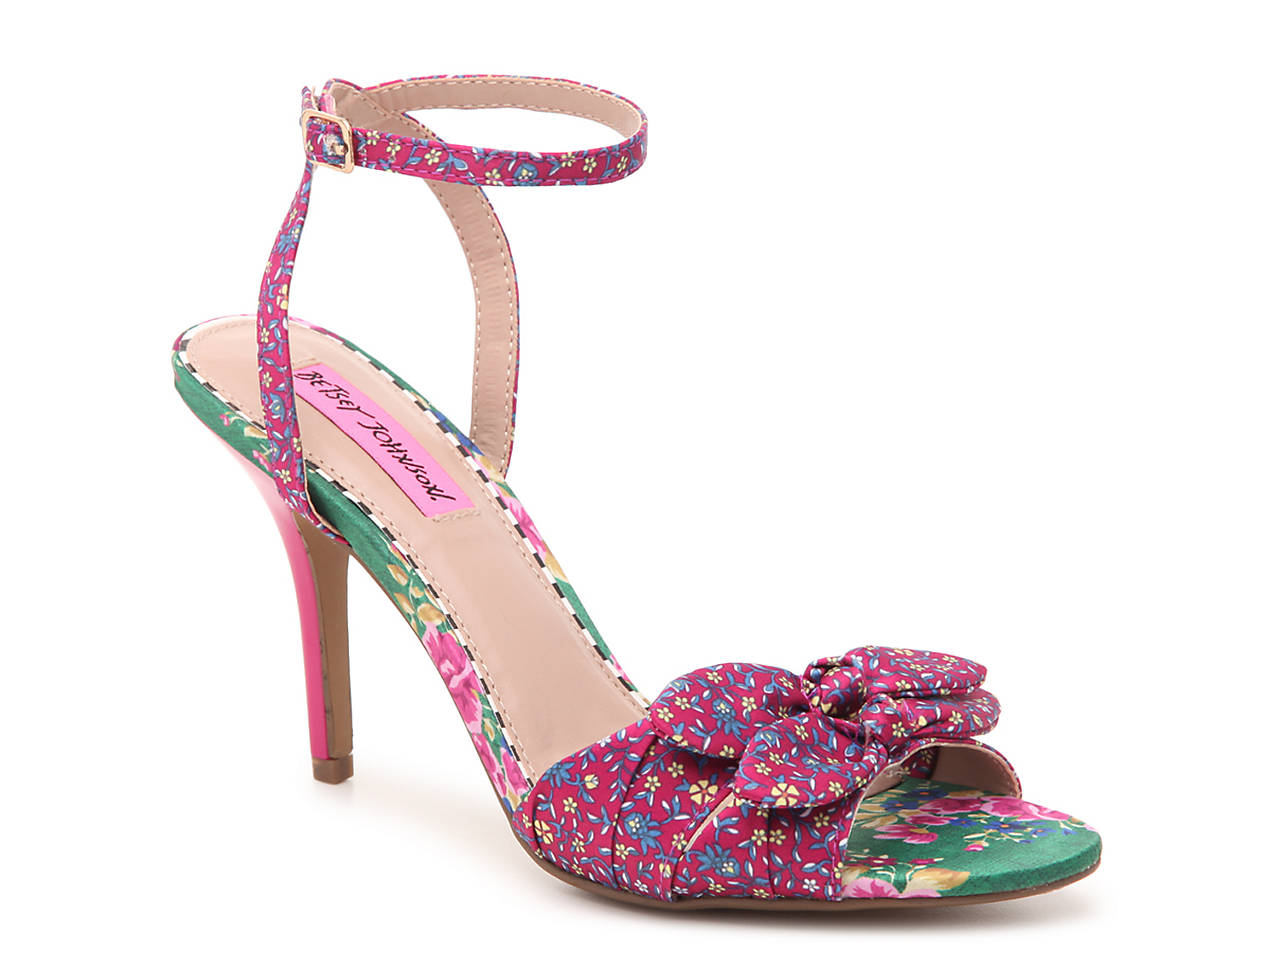 db66bf97aec3 Betsey Johnson Sweetie Sandal Women's Shoes | DSW